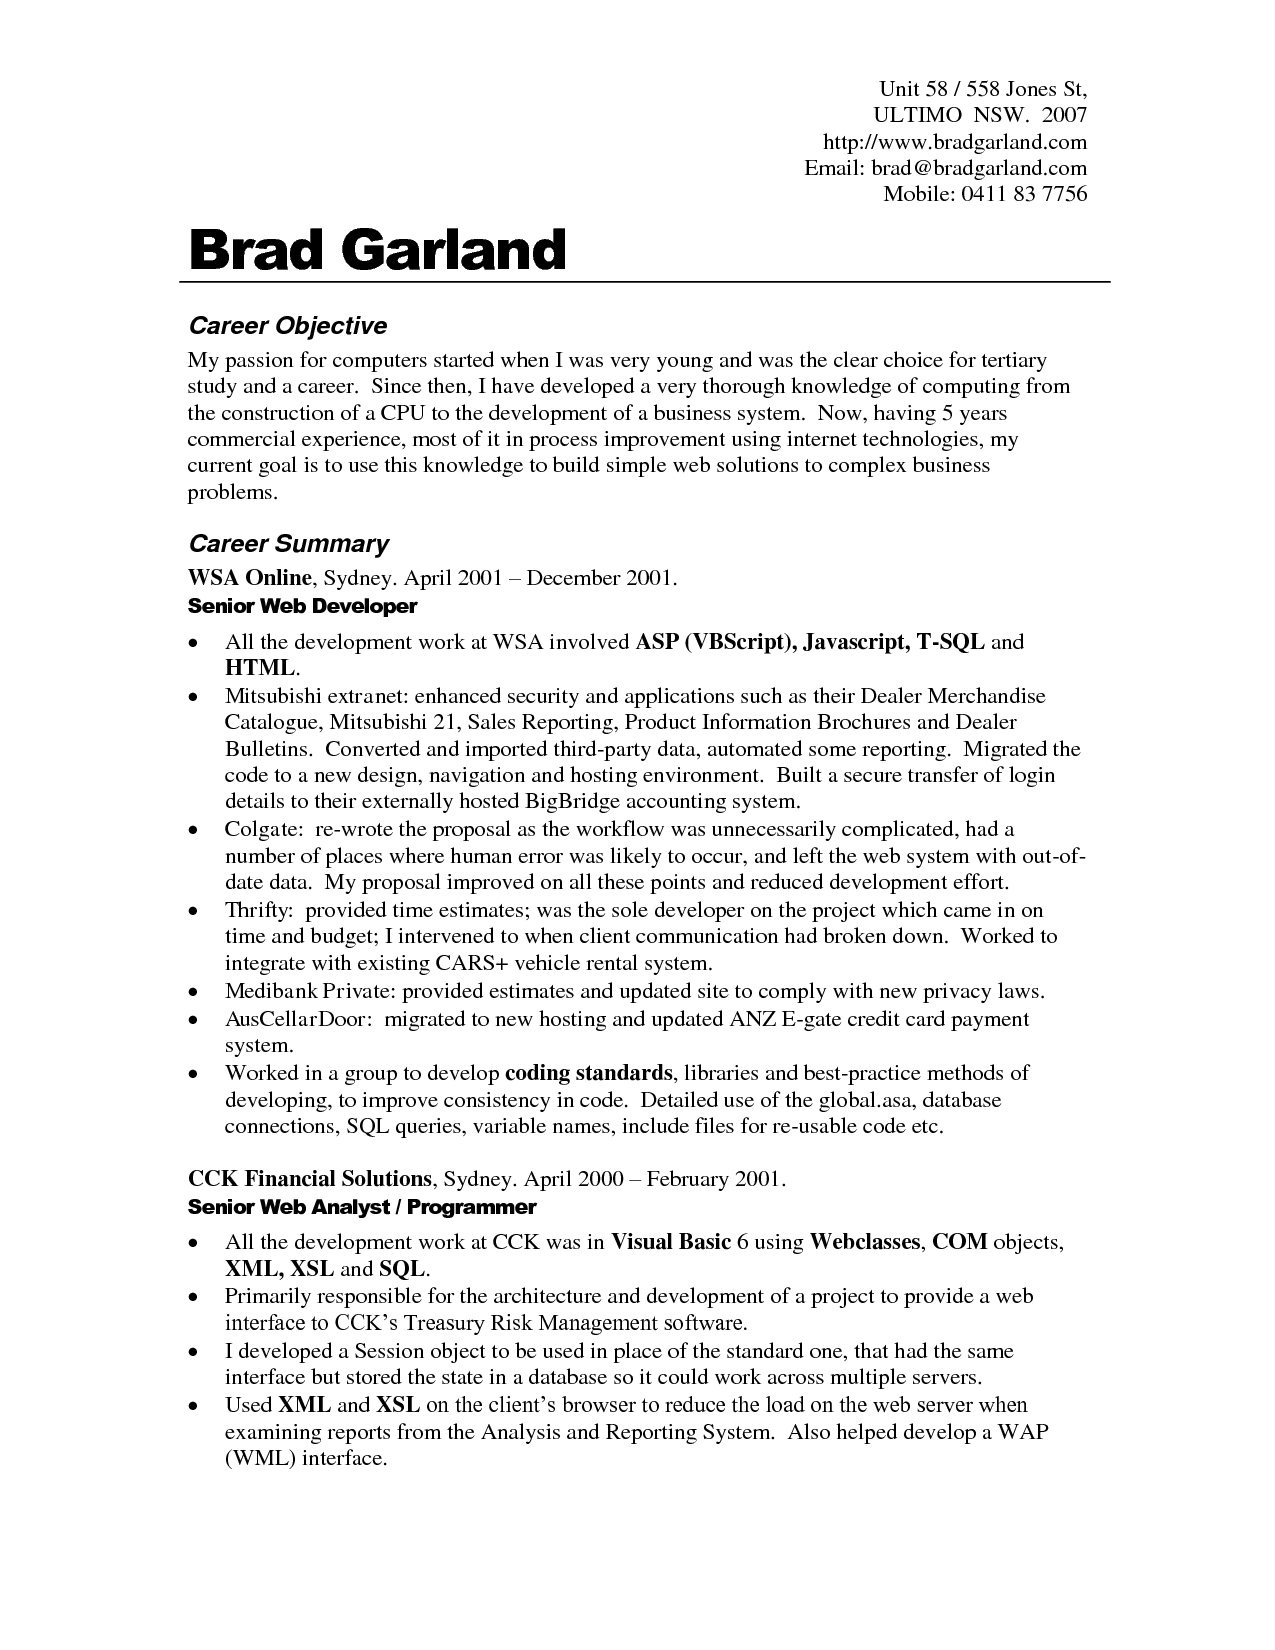 Objective Of Resume Sample Fair Resume Objectives Examples Best Templateresume Objective Examples .